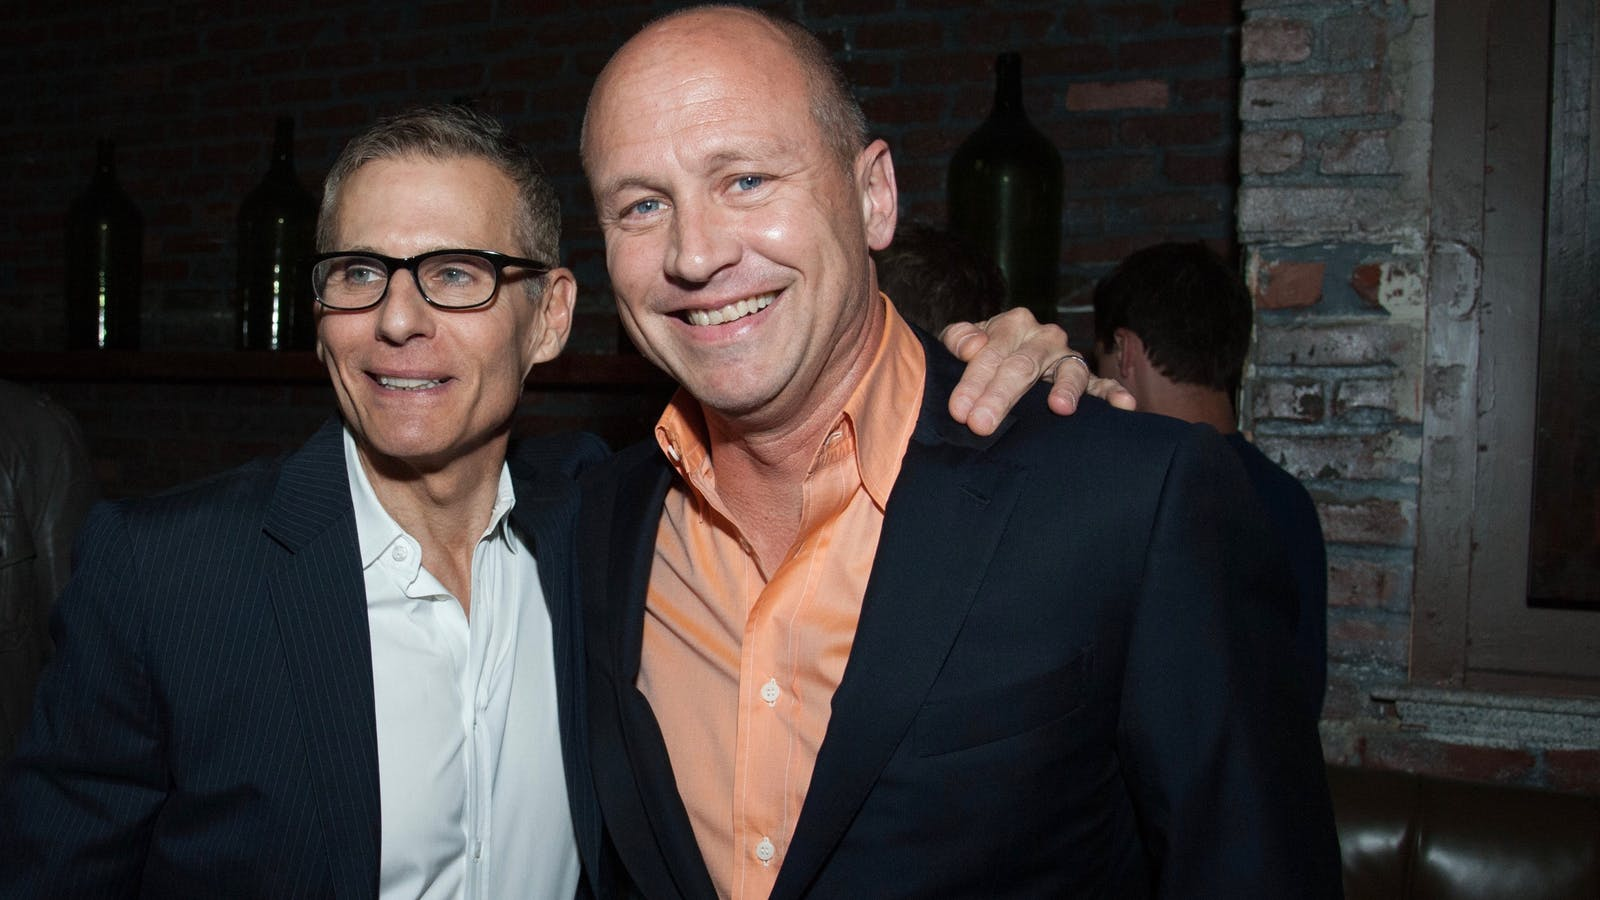 HBO's former programming chief Michael Lombardo with Silicon Valley producer Mike Judge. Photo by AP.